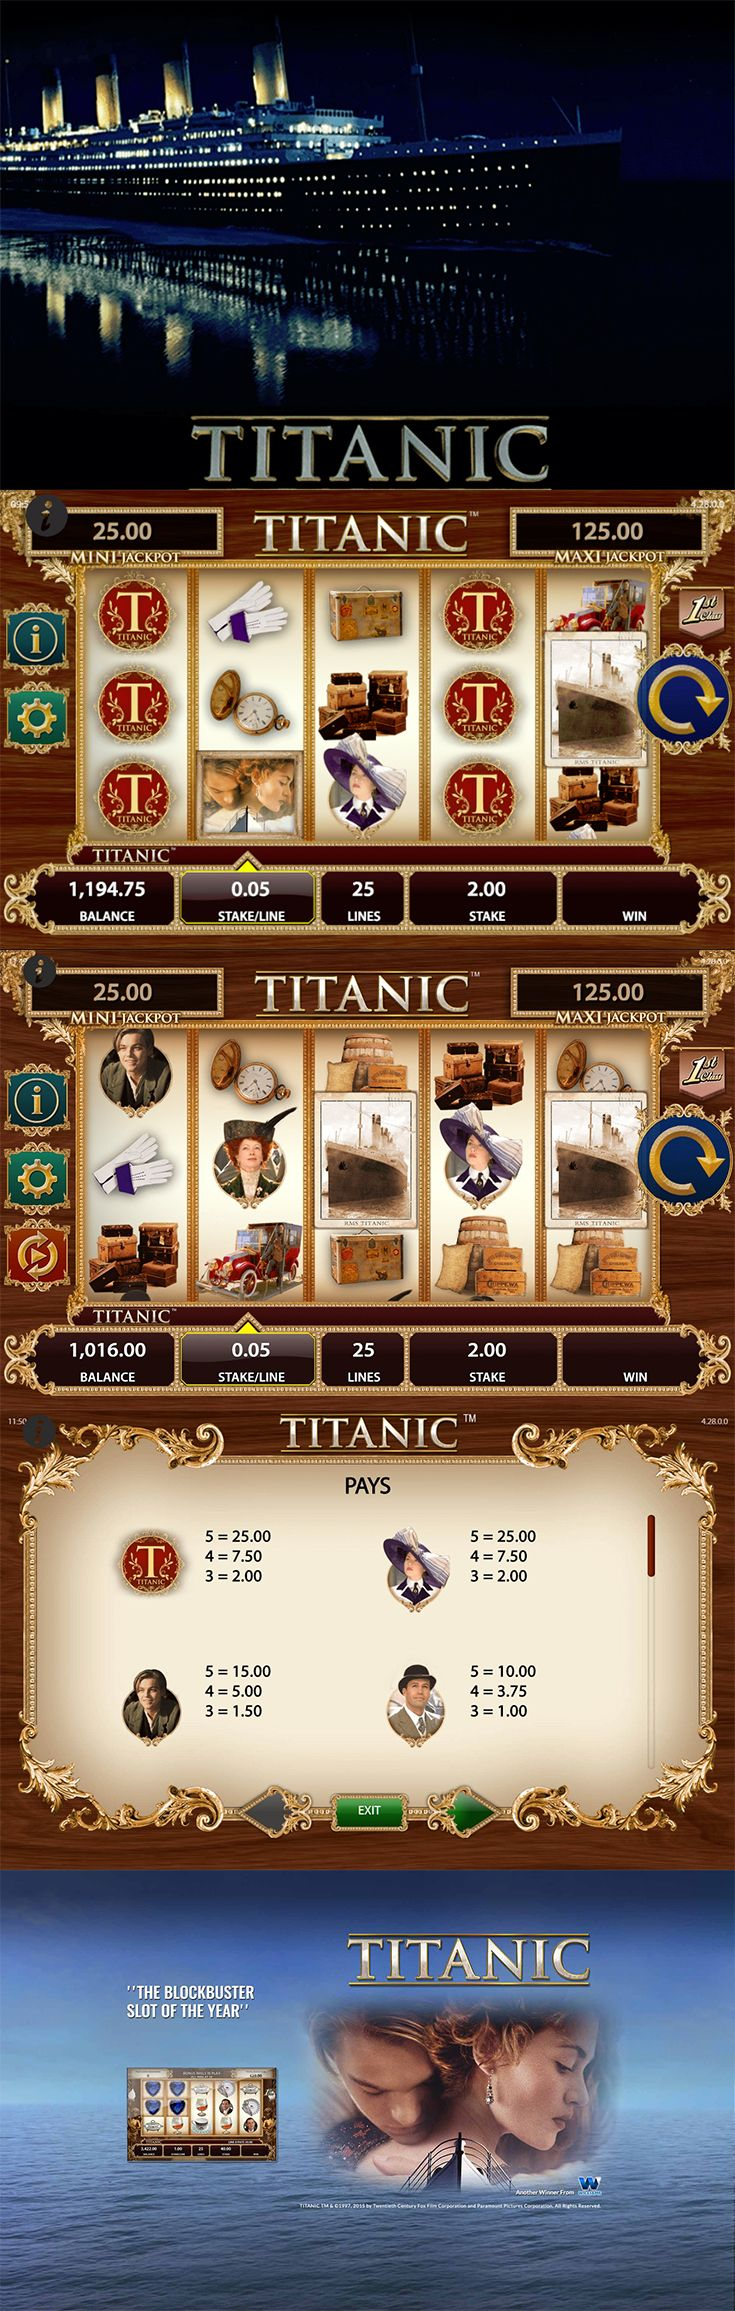 Relive the most popular movie of all time by playing the Titanic online slot for free at The SpinRoom.  --  #FreeSlot #OnlineSlot #OnlineCasino